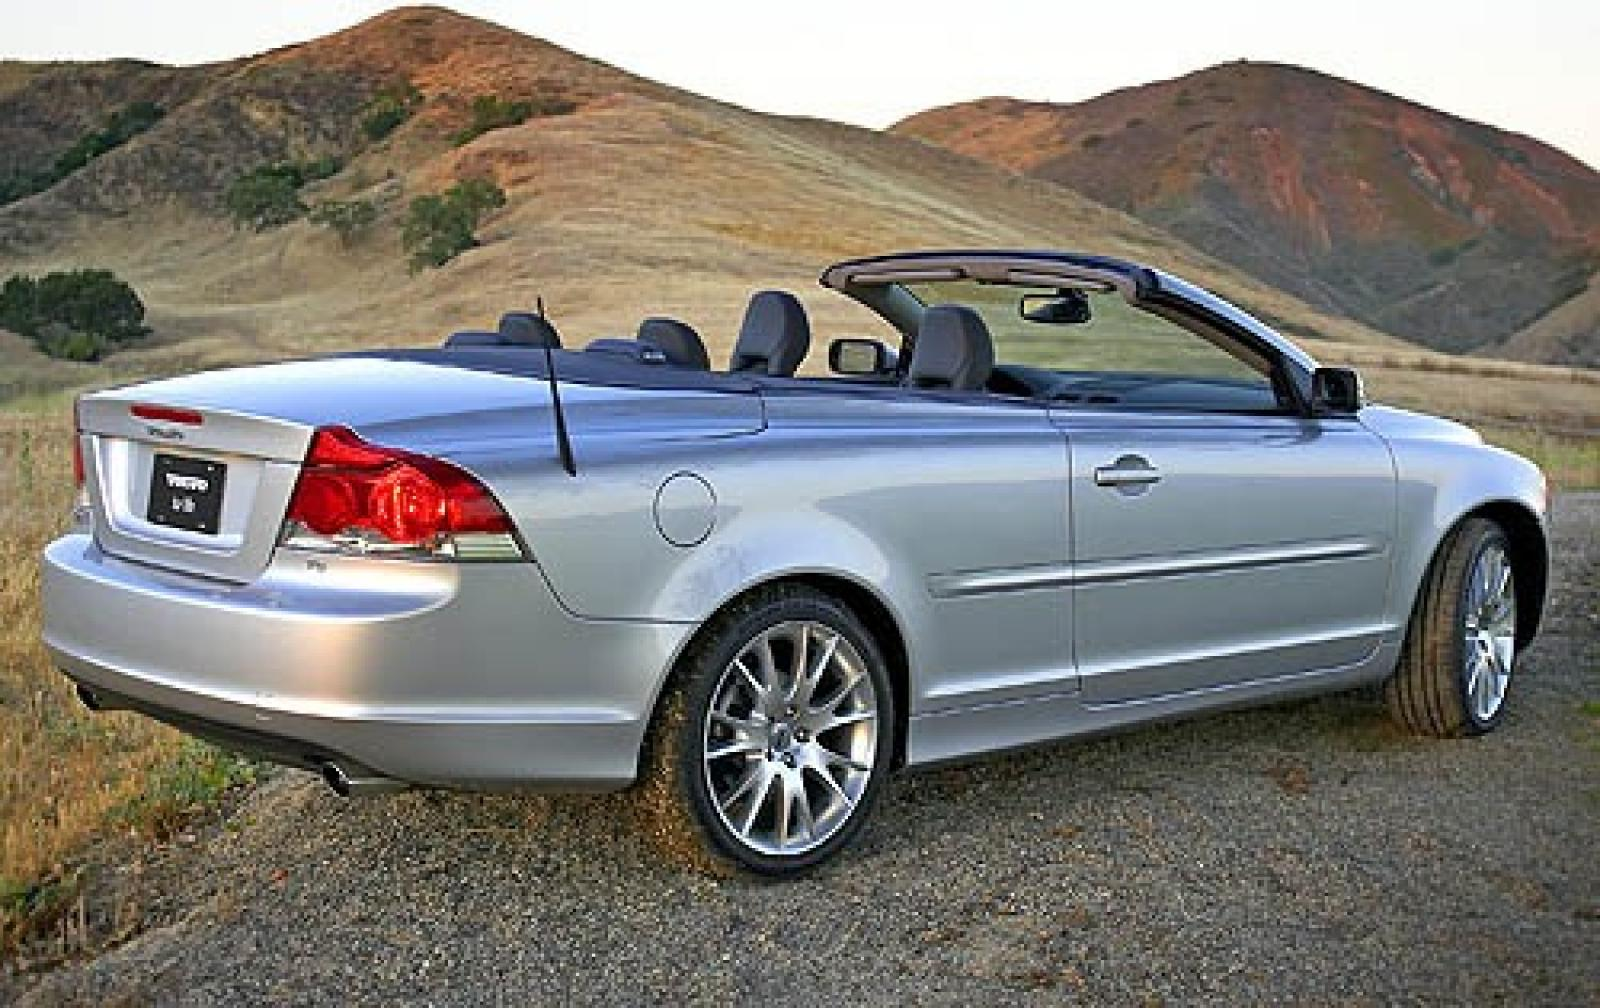 2006 volvo c70 information and photos zombiedrive. Black Bedroom Furniture Sets. Home Design Ideas